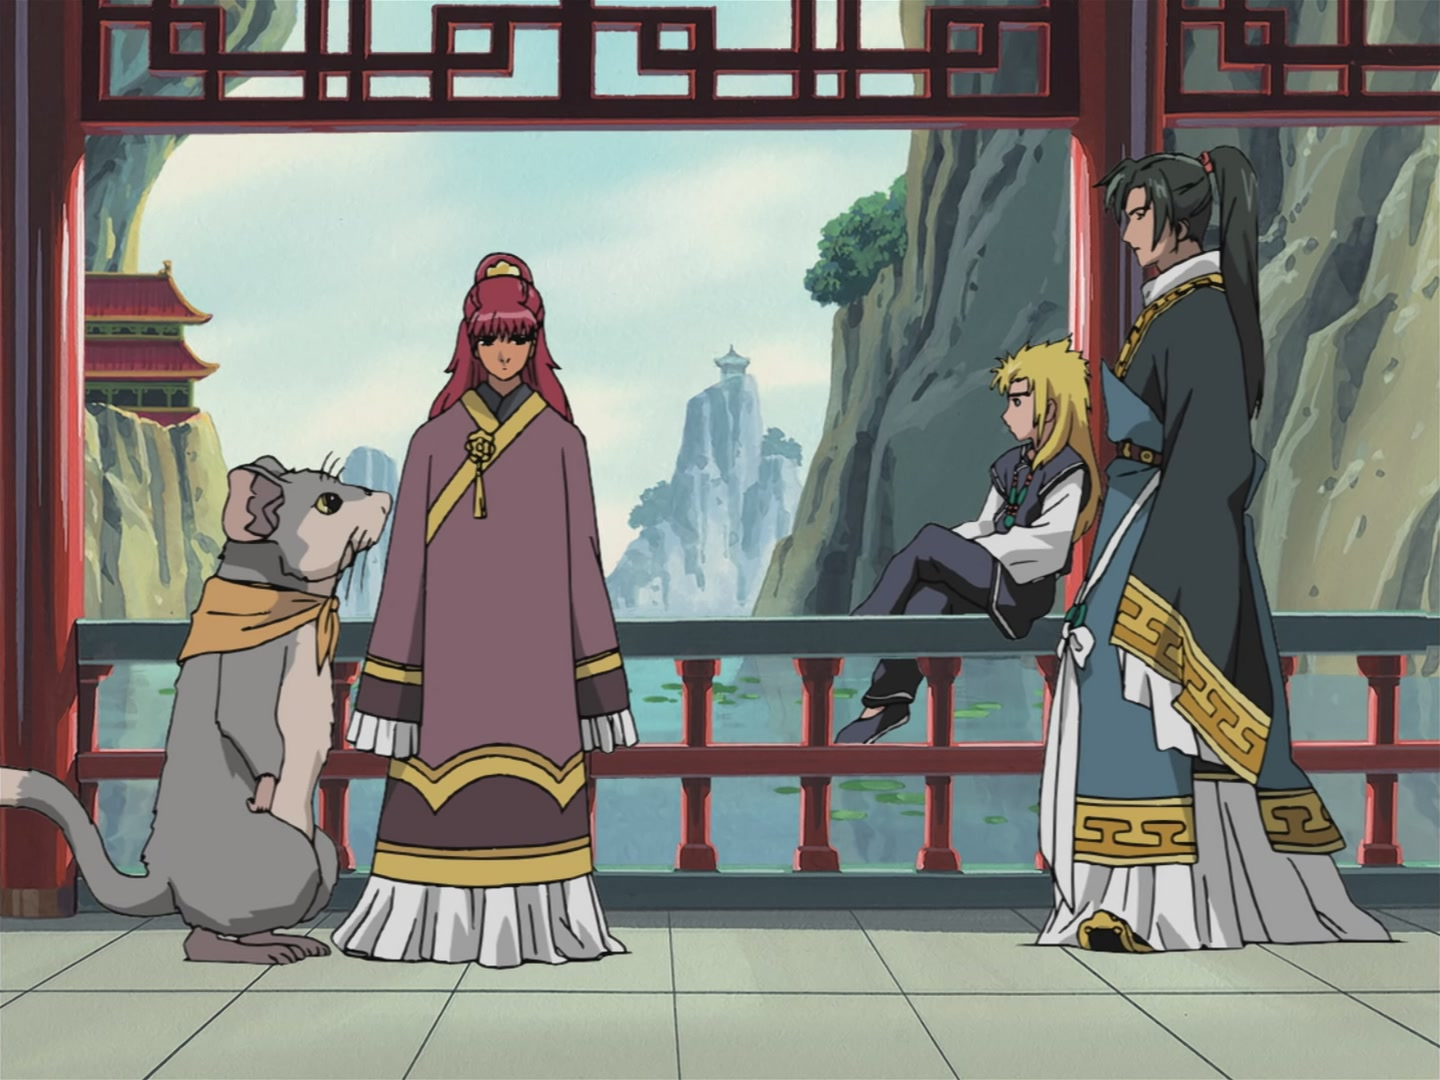 Staying Inspired in Dark Times with Fuyumi Ono's The Twelve Kingdoms